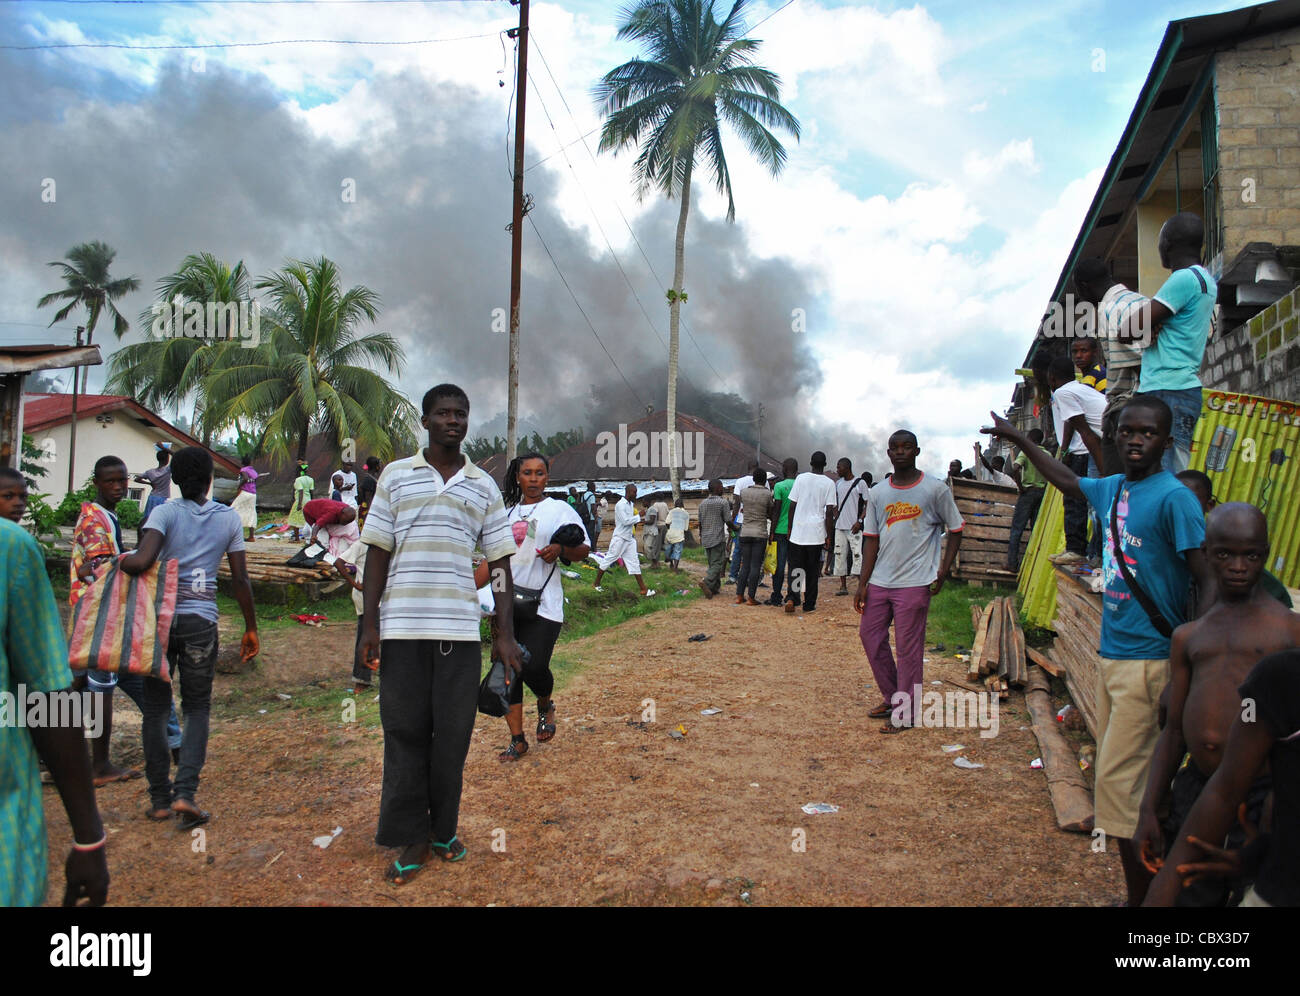 Burning building during political violence at a rally in Bo ahead of 2012 elections in Sierra Leone - Stock Image